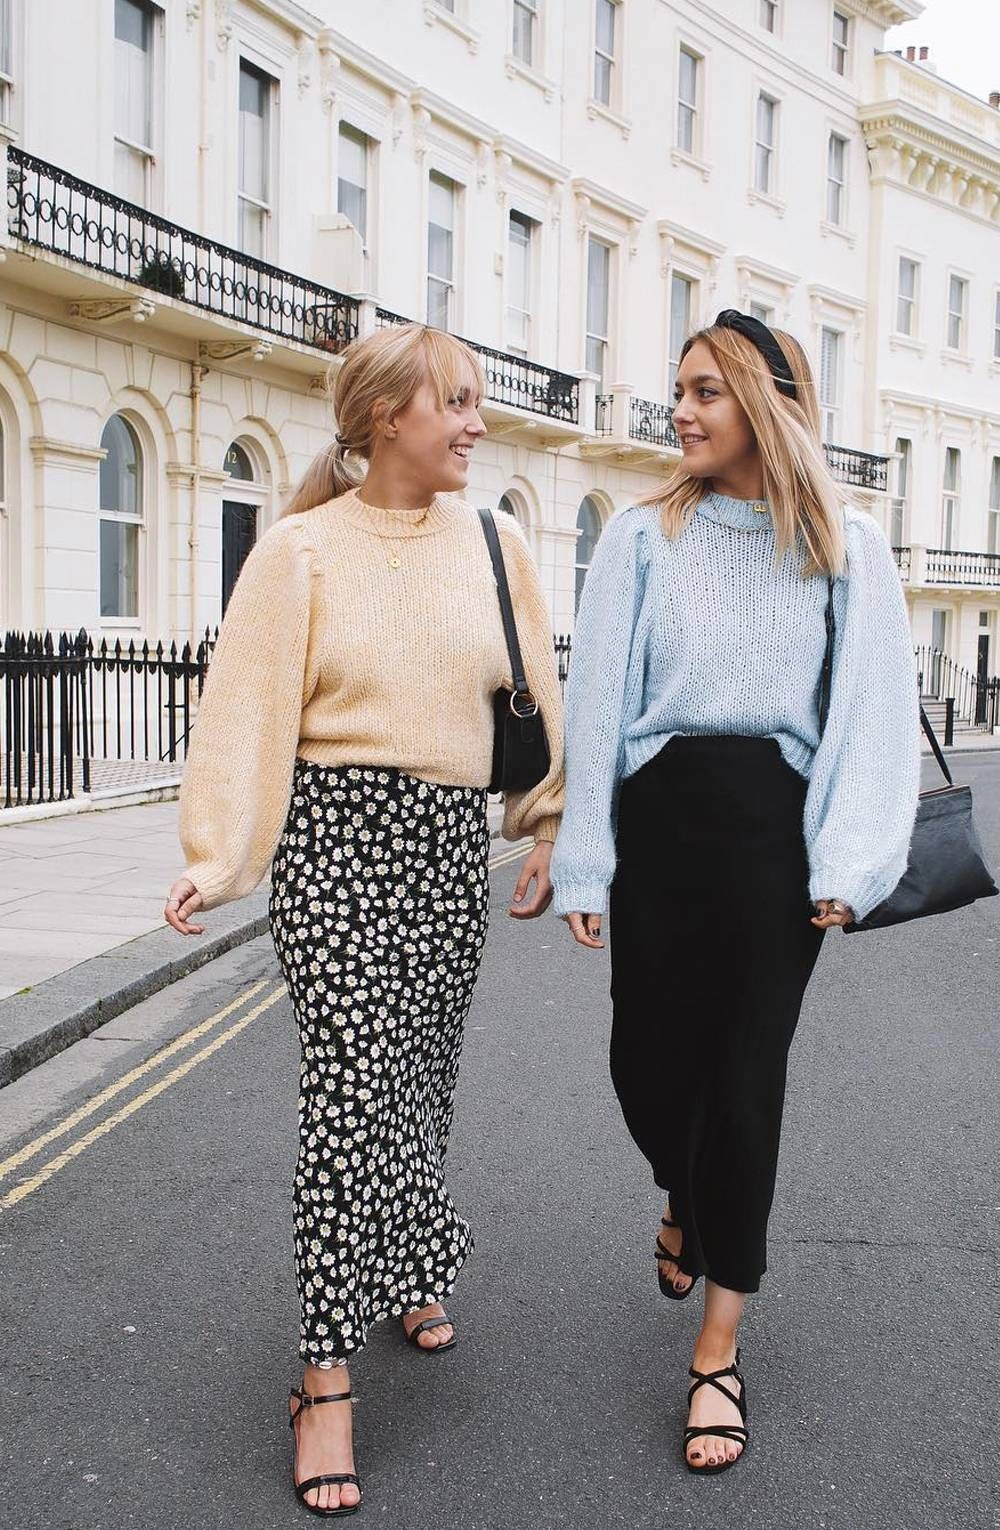 27 Outfit Ideas That Are for Real Life (Not Just Fashion Week